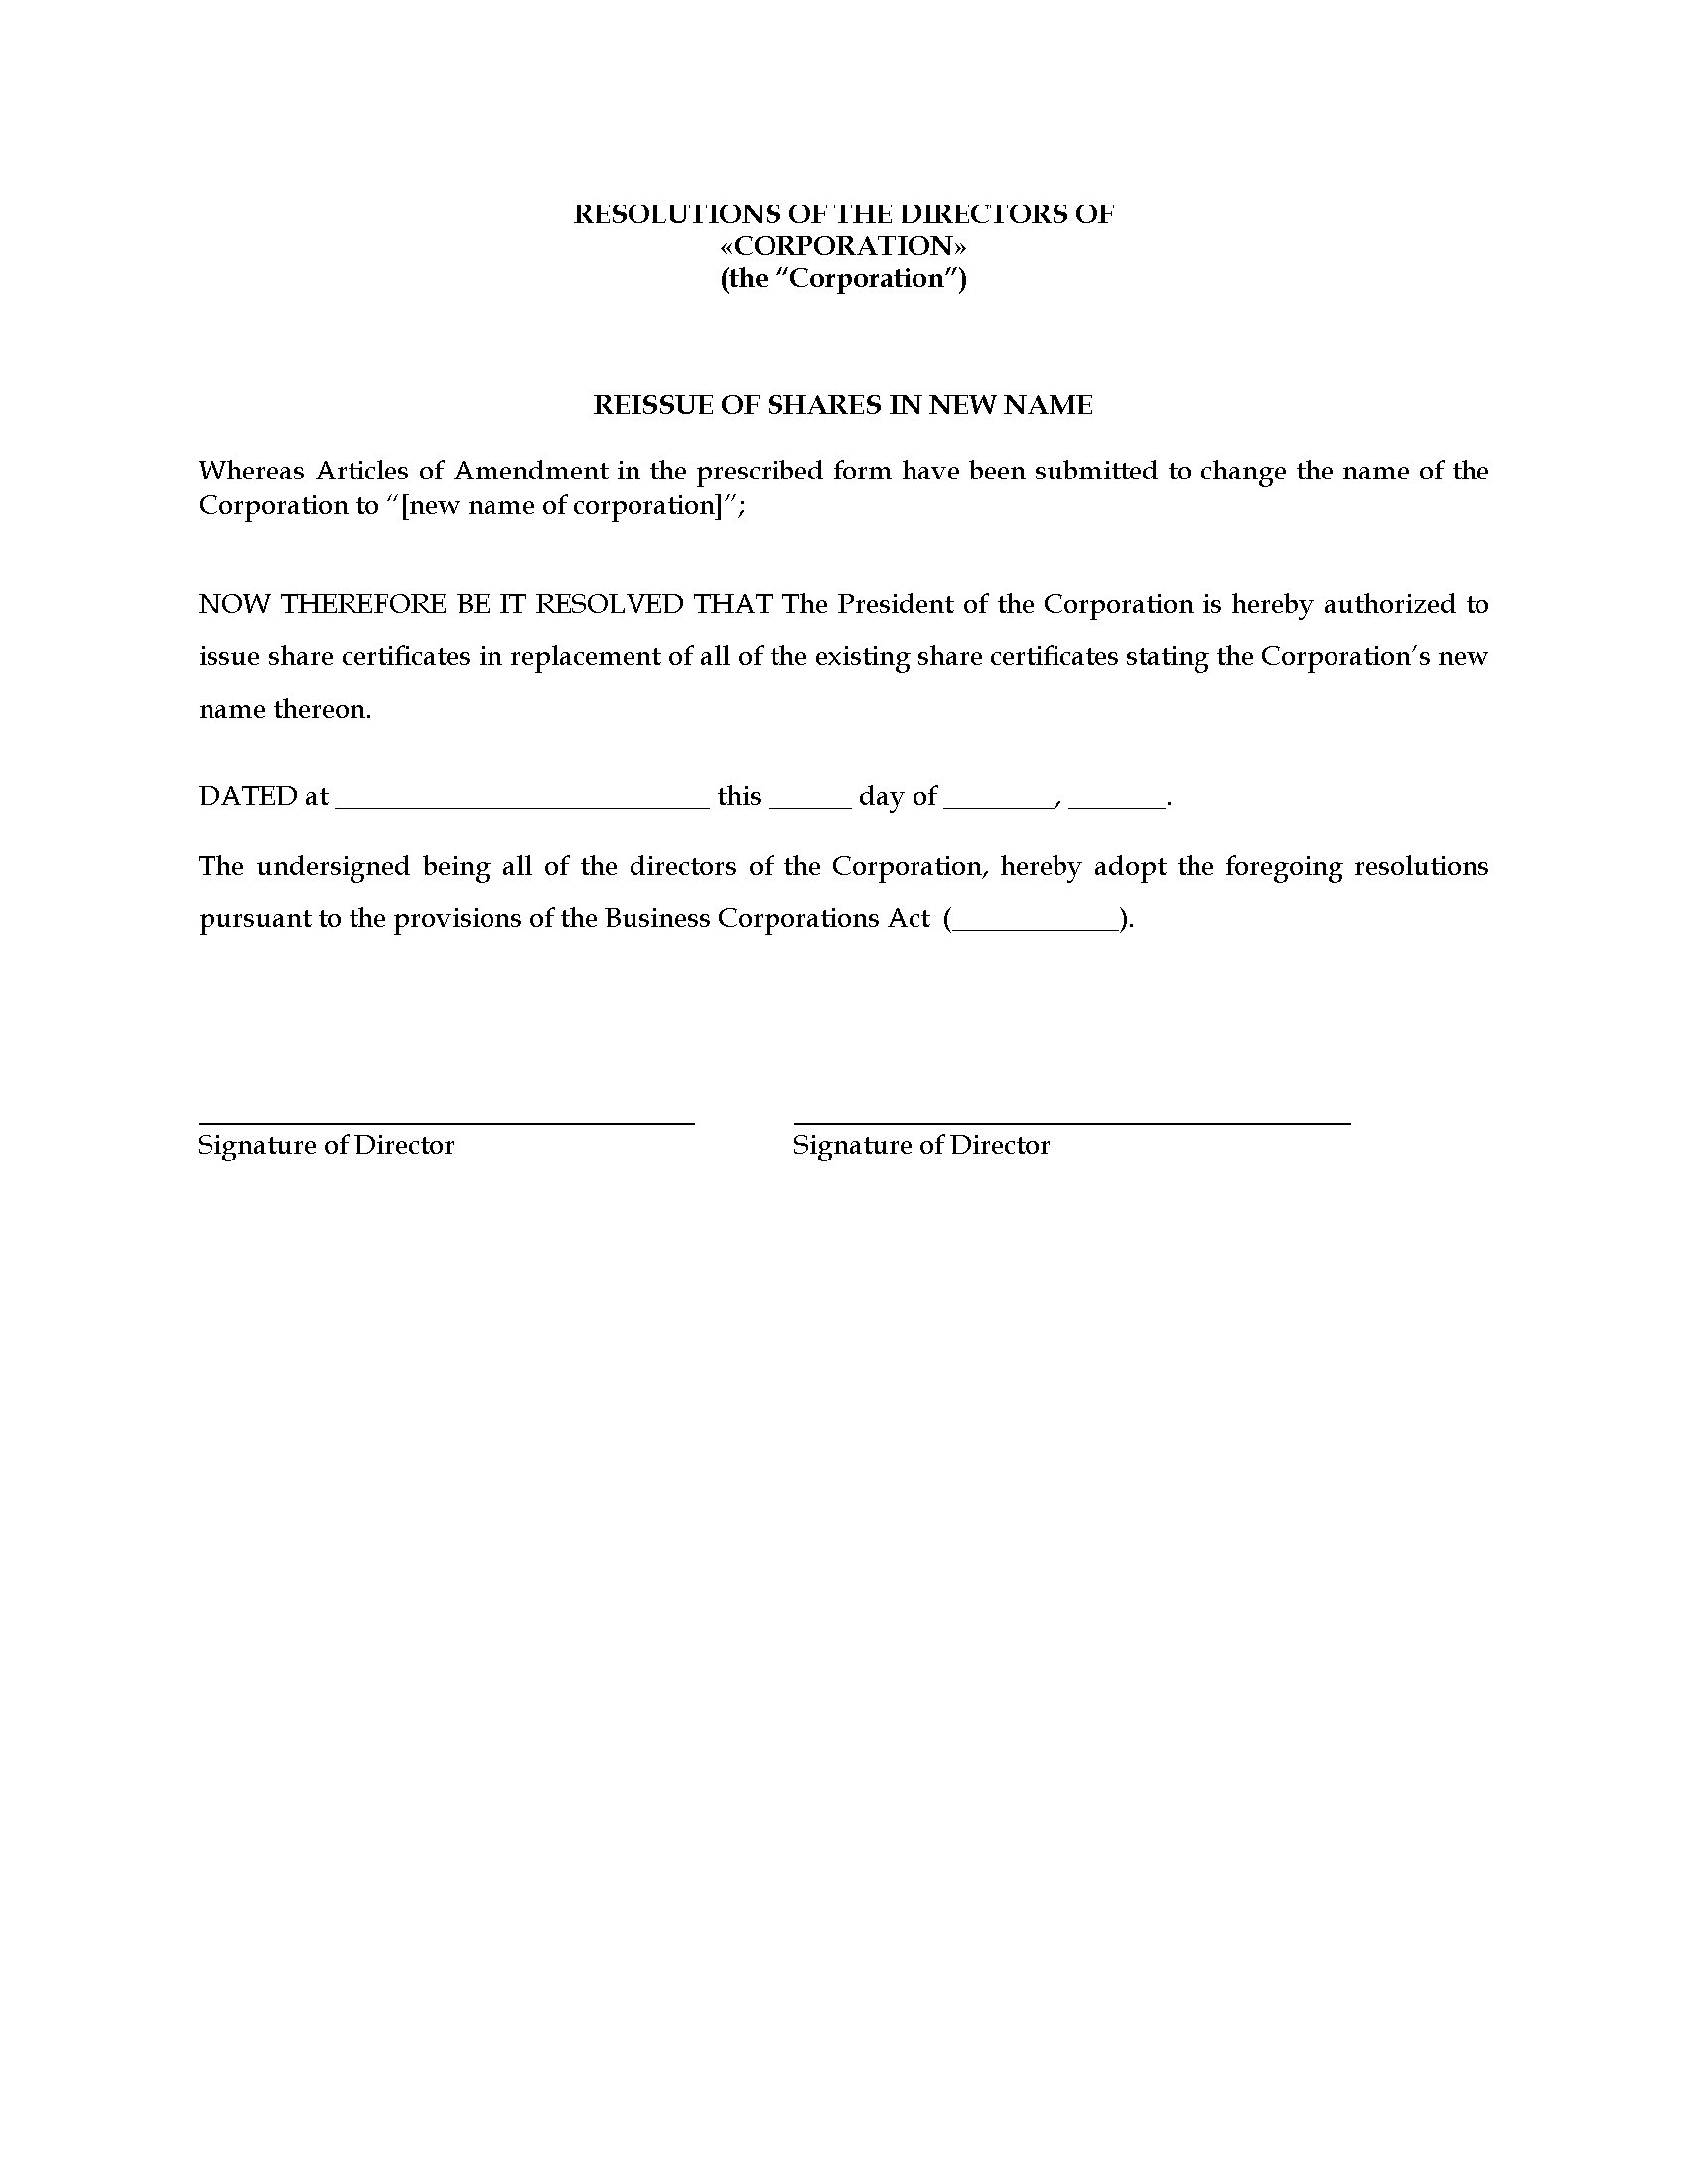 resolution of trustees template - canada directors resolution to reissue shares after name